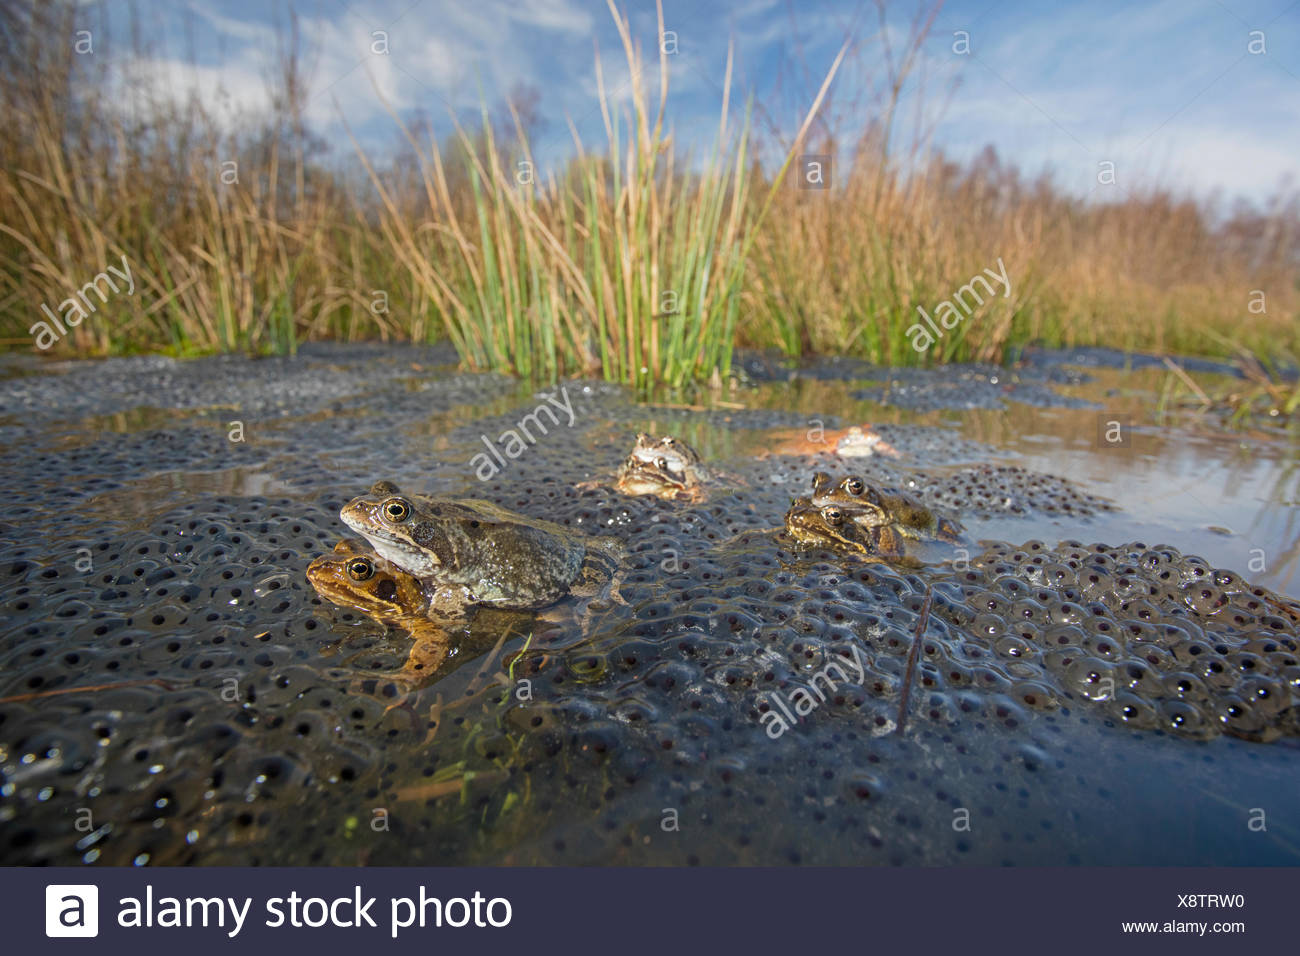 common frogs between frog spawn - Stock Image